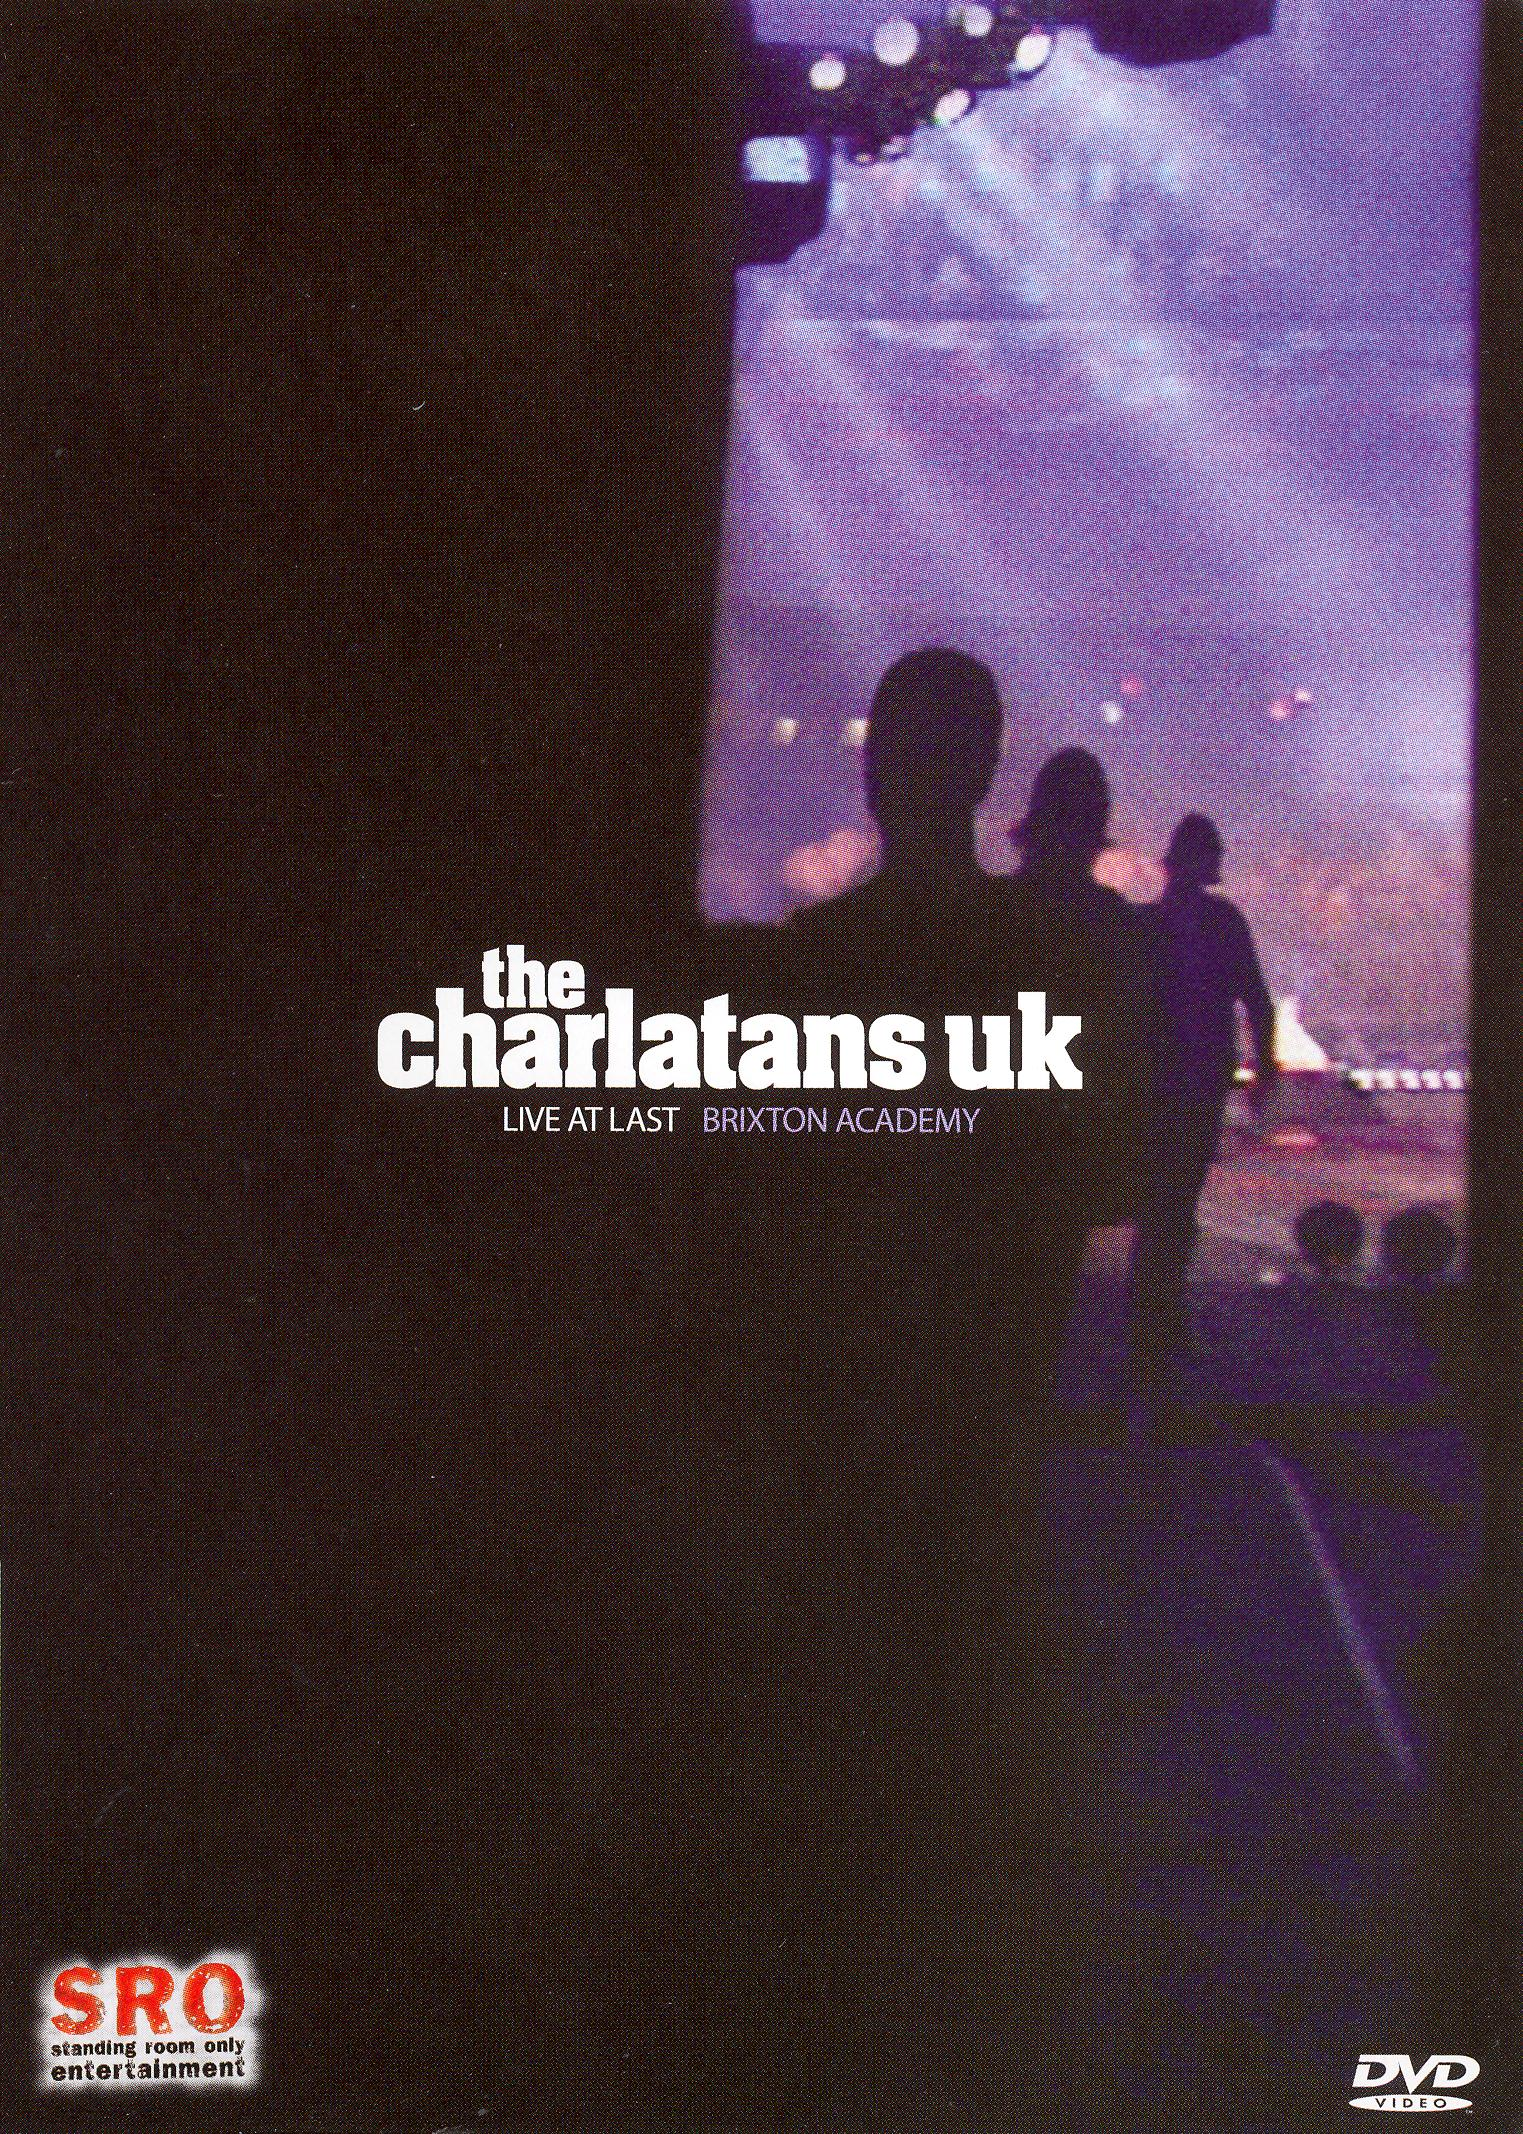 The Charlatans UK: Live at Last